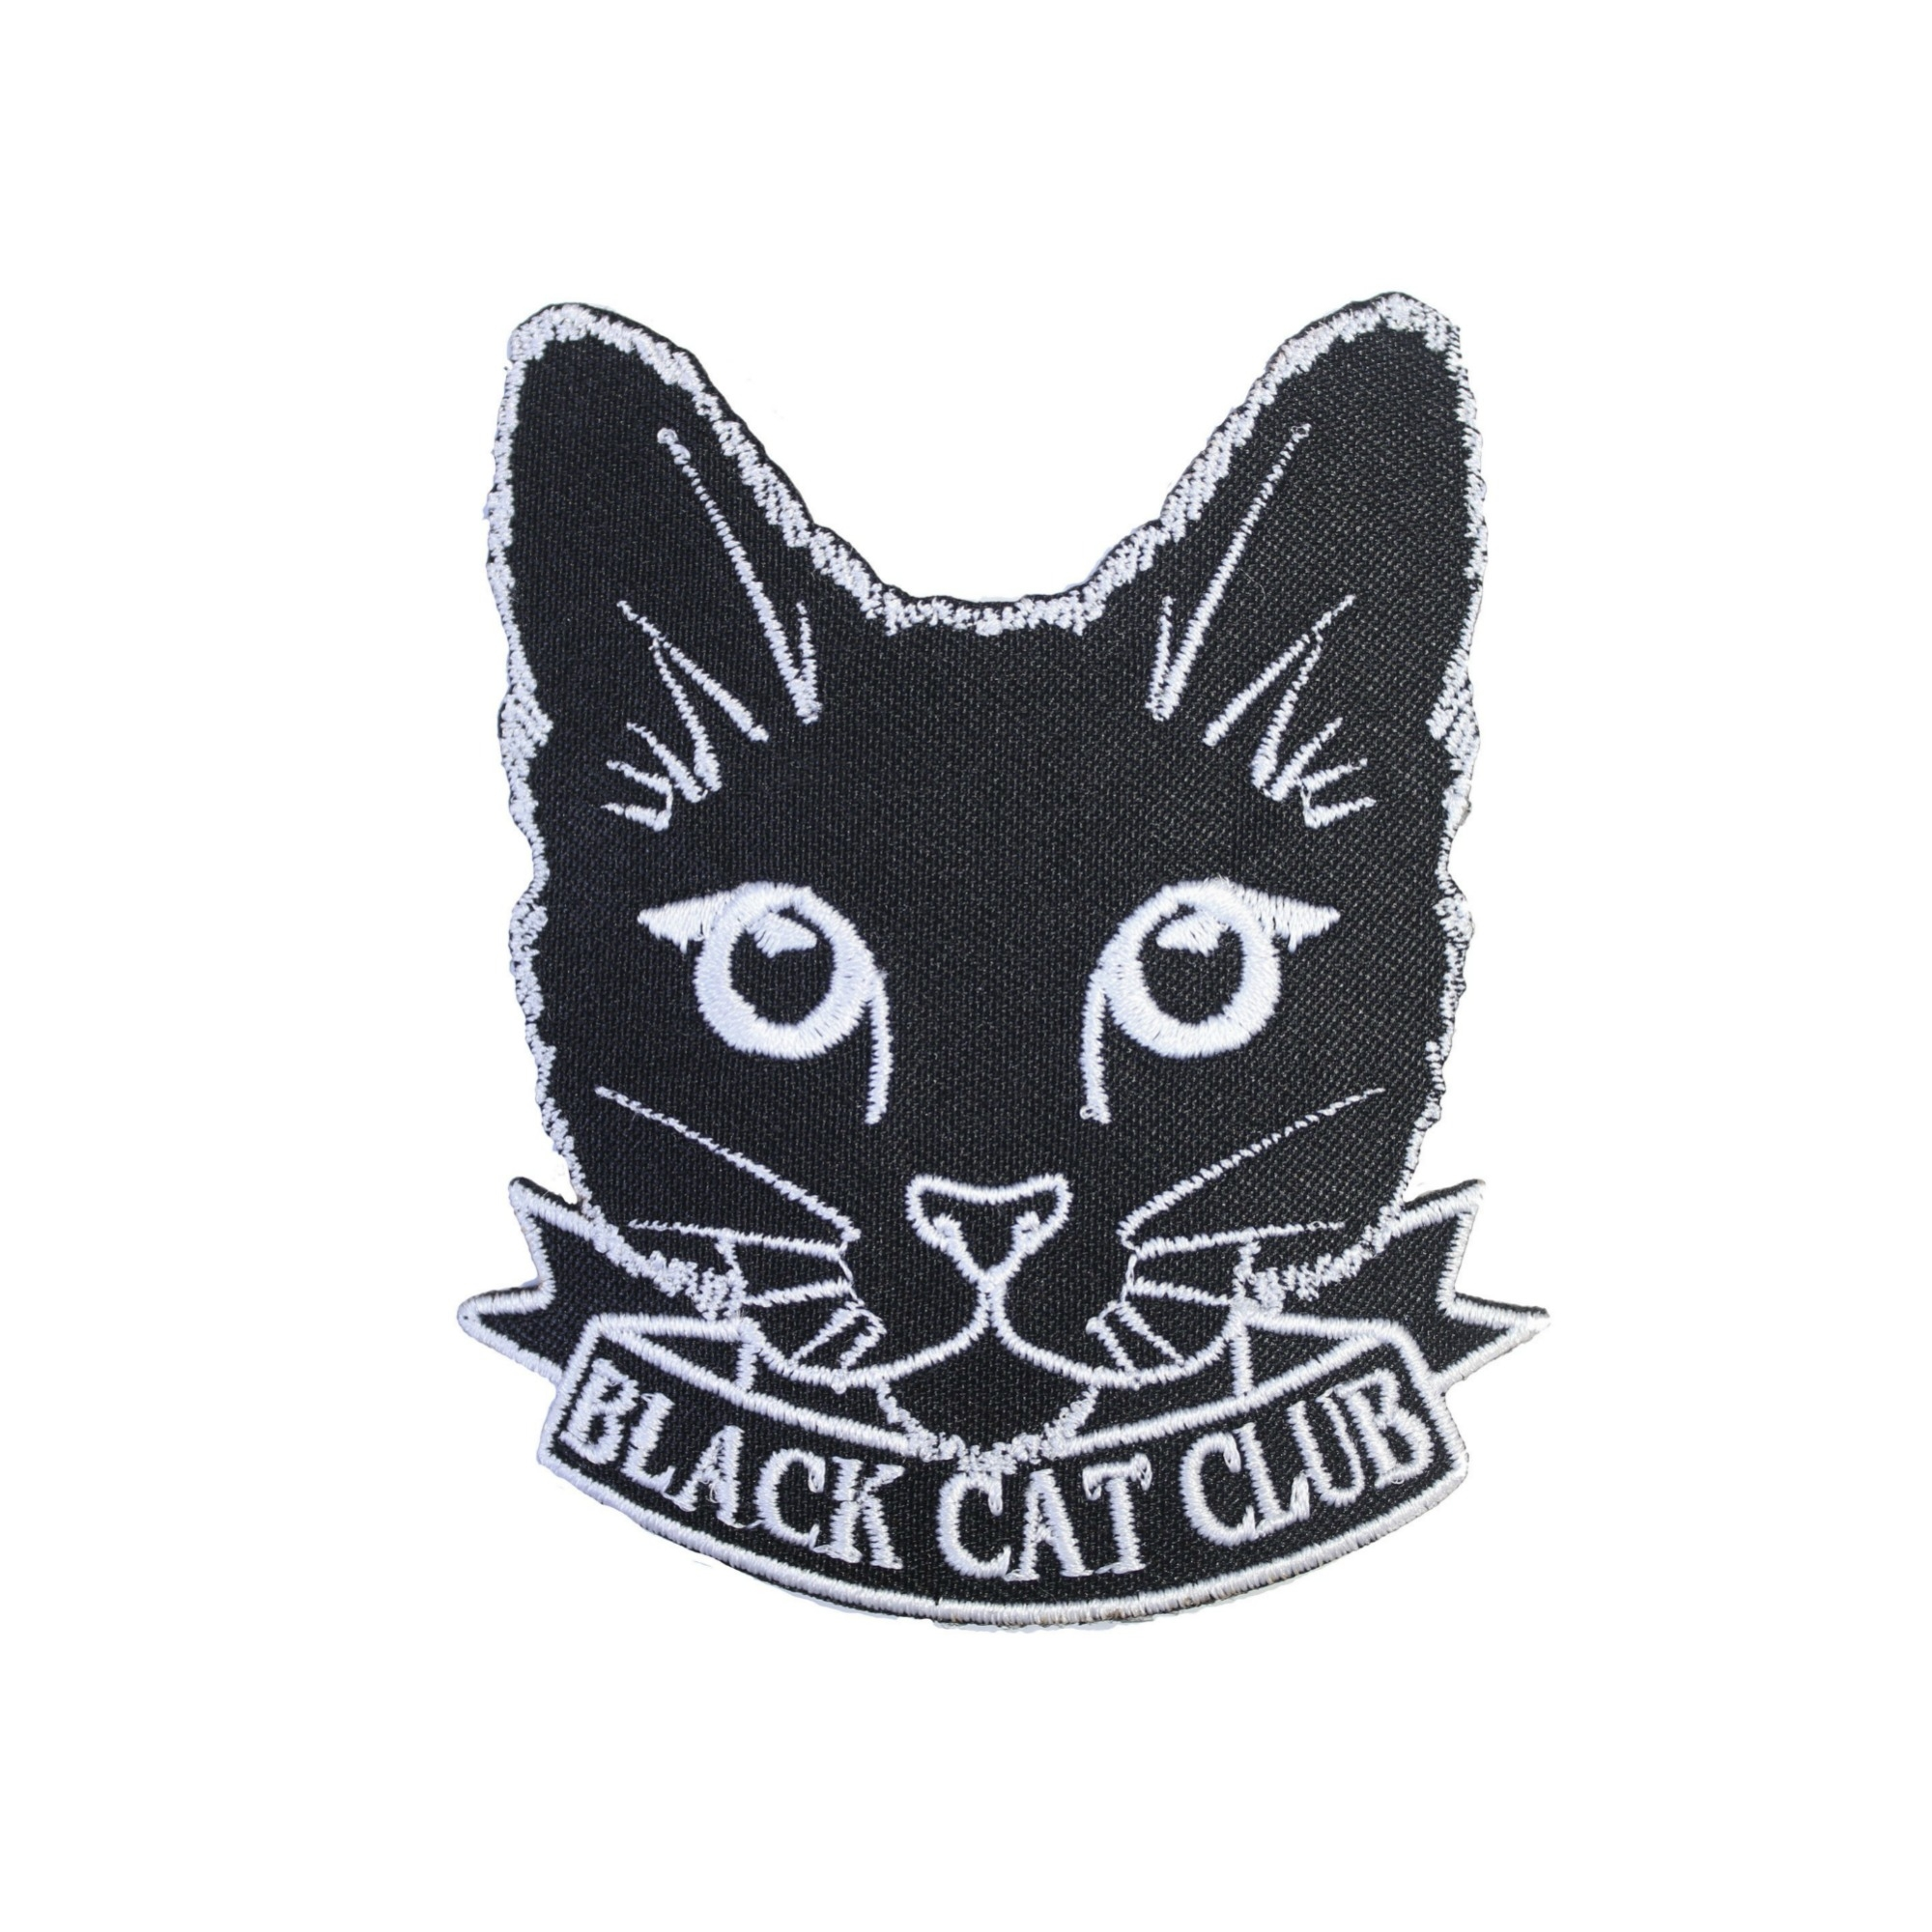 Black Cat Club Patch